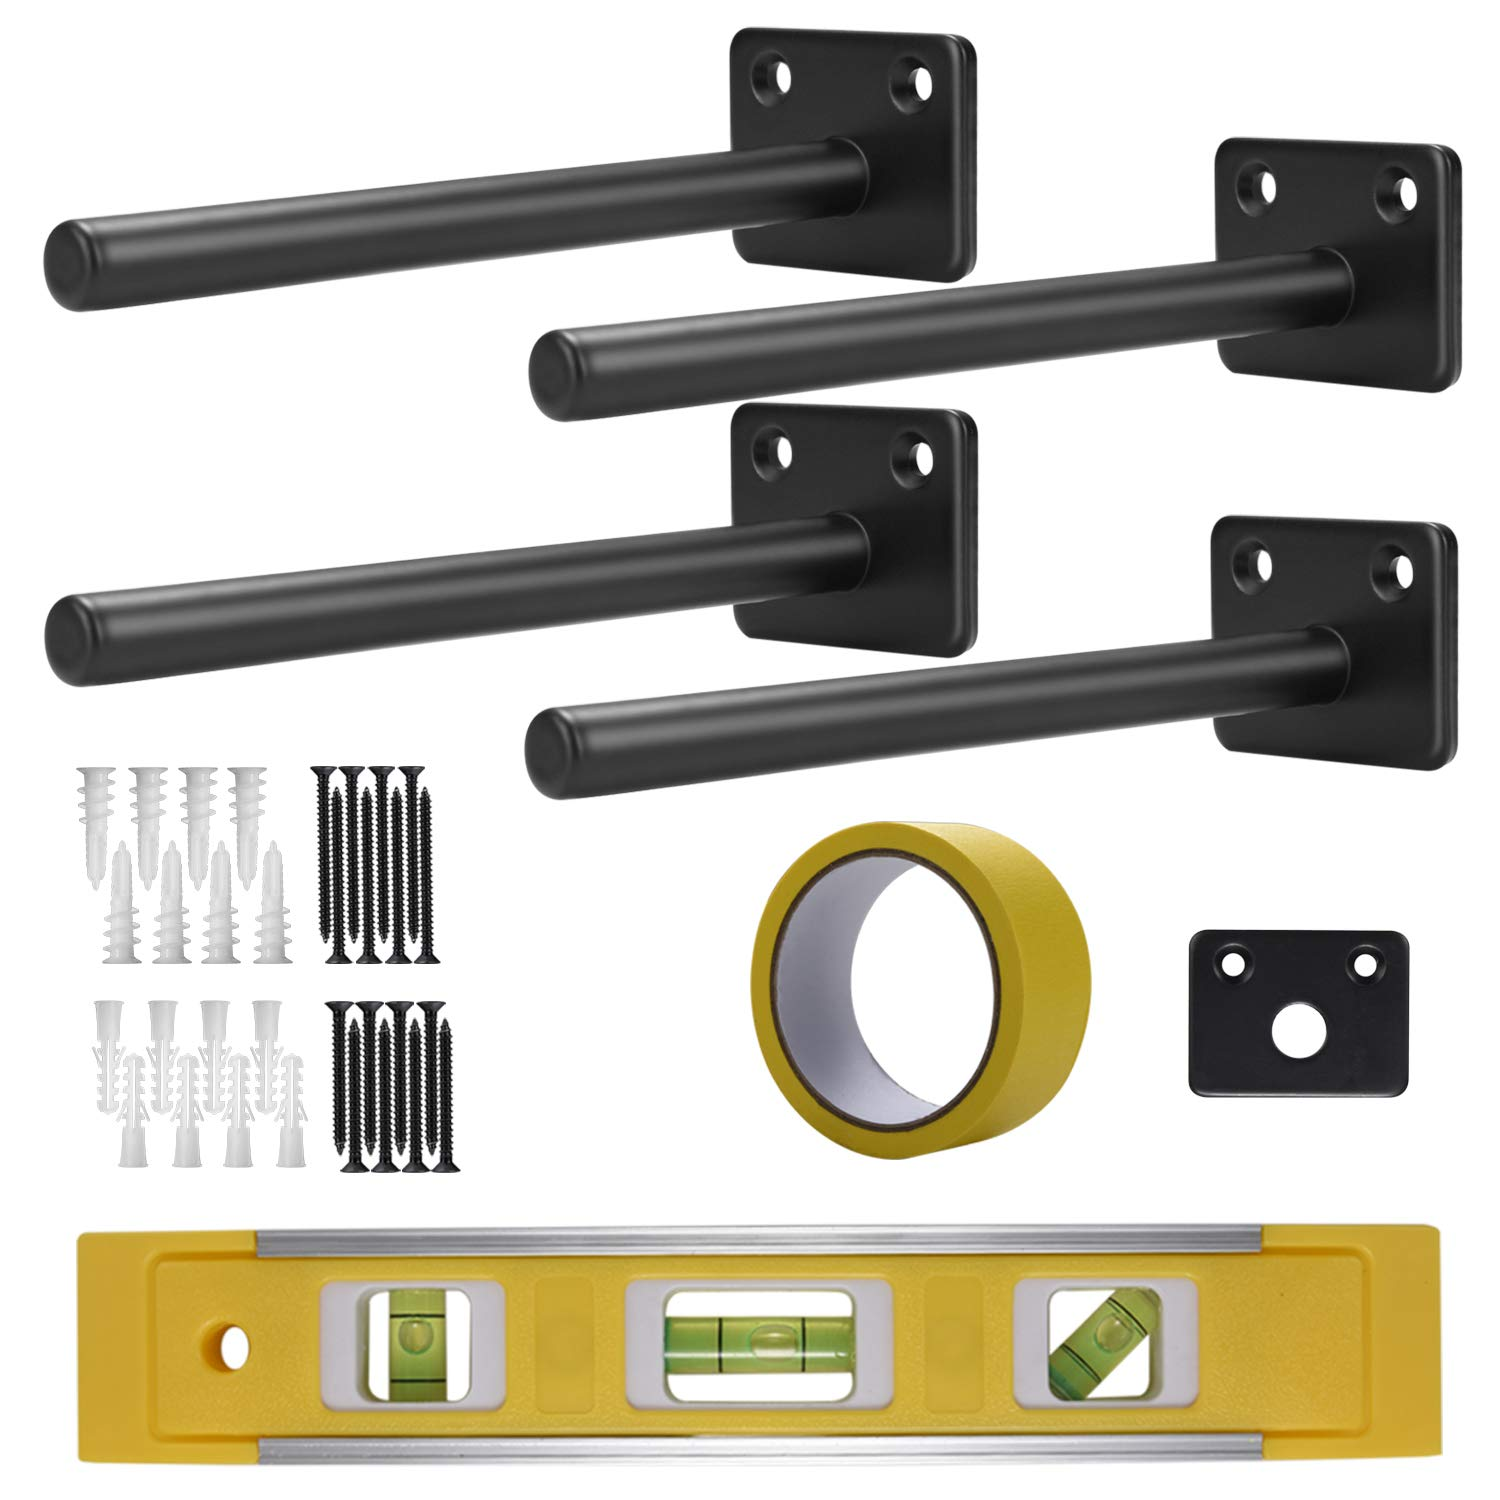 ComfiTime - 6 inch Solid Steel Floating Shelf Bracket (4X), Lab-Tested Heavy Duty Blind Shelf Support, Complete Kit with Templates and Spirit Level, Hidden Wall Mounting Hardware for Wood Shelf by ComfiTime